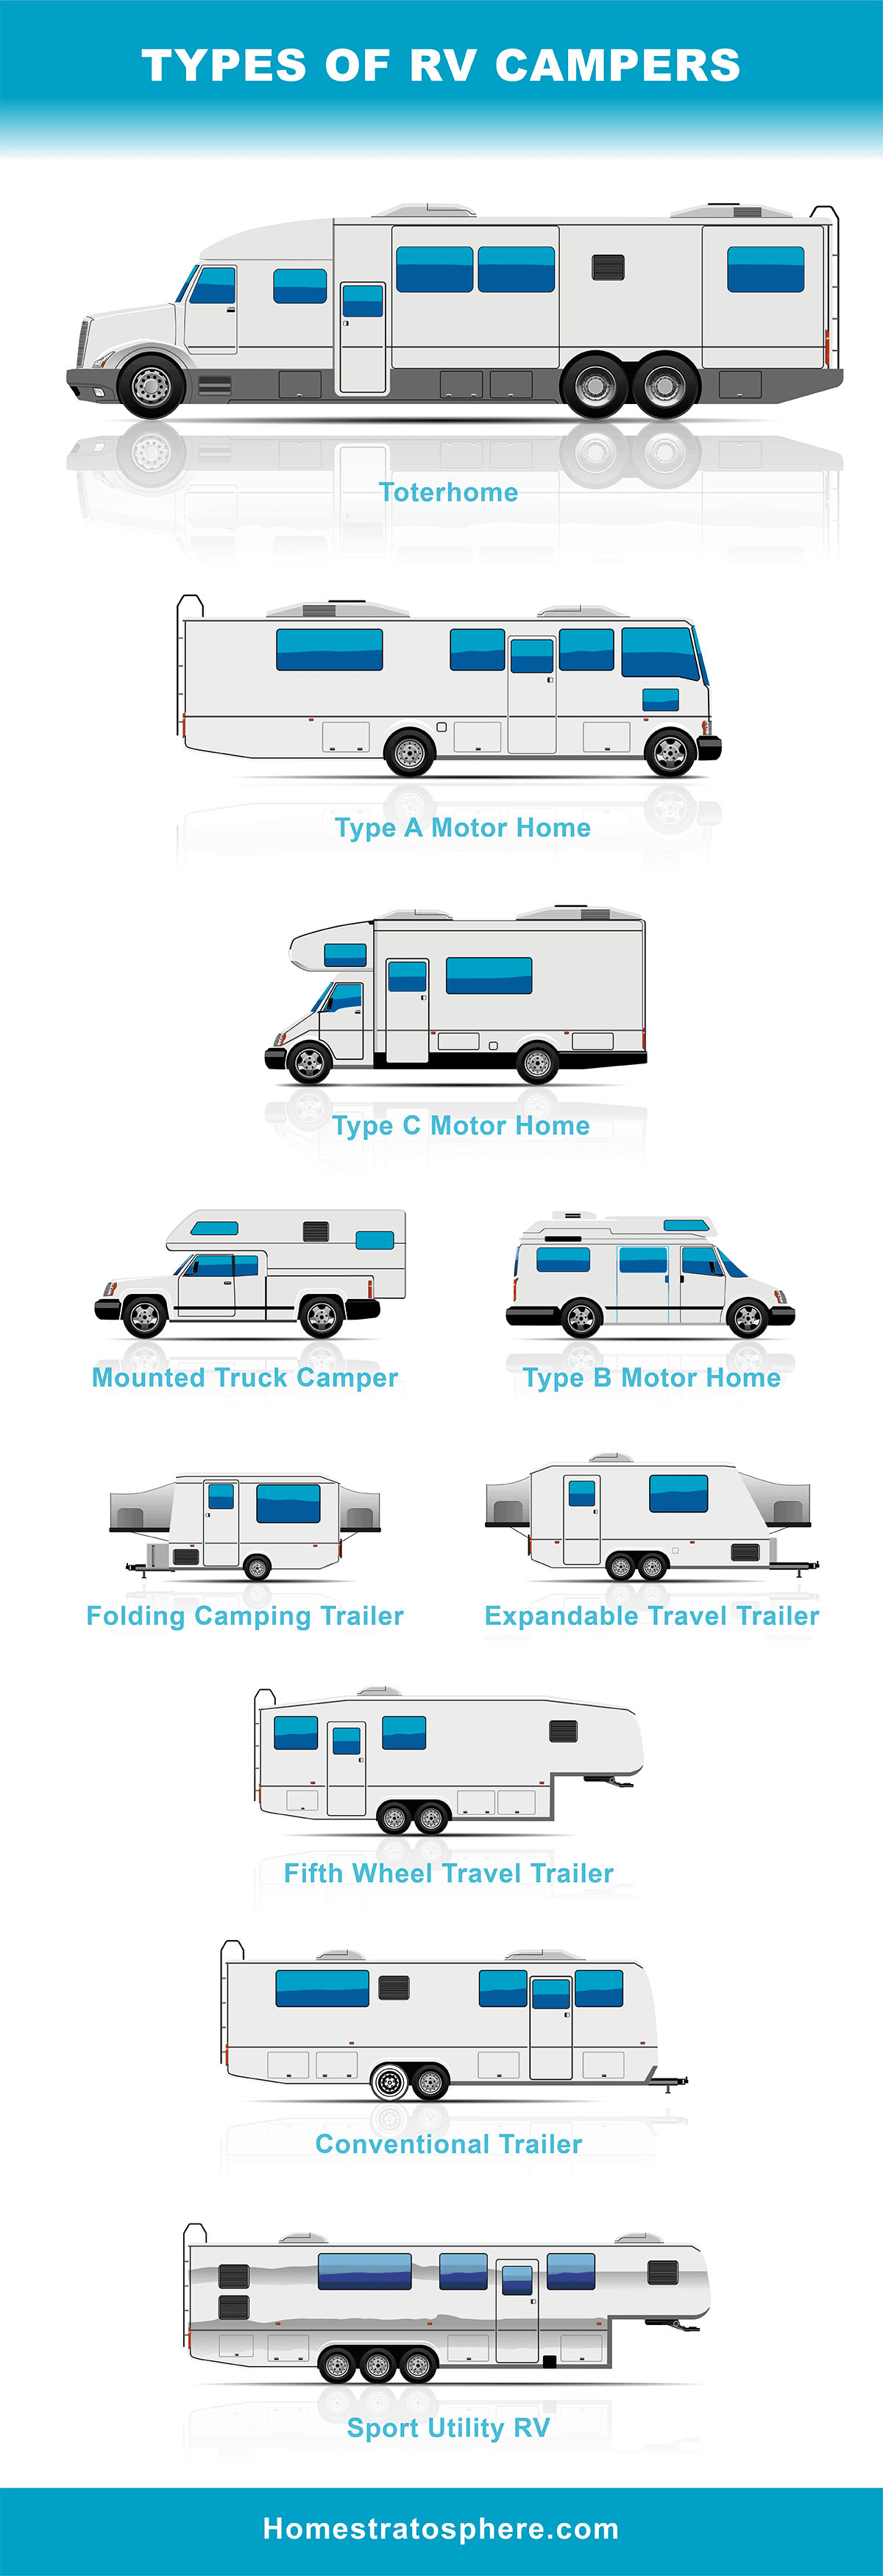 Types of RVs illustration chart